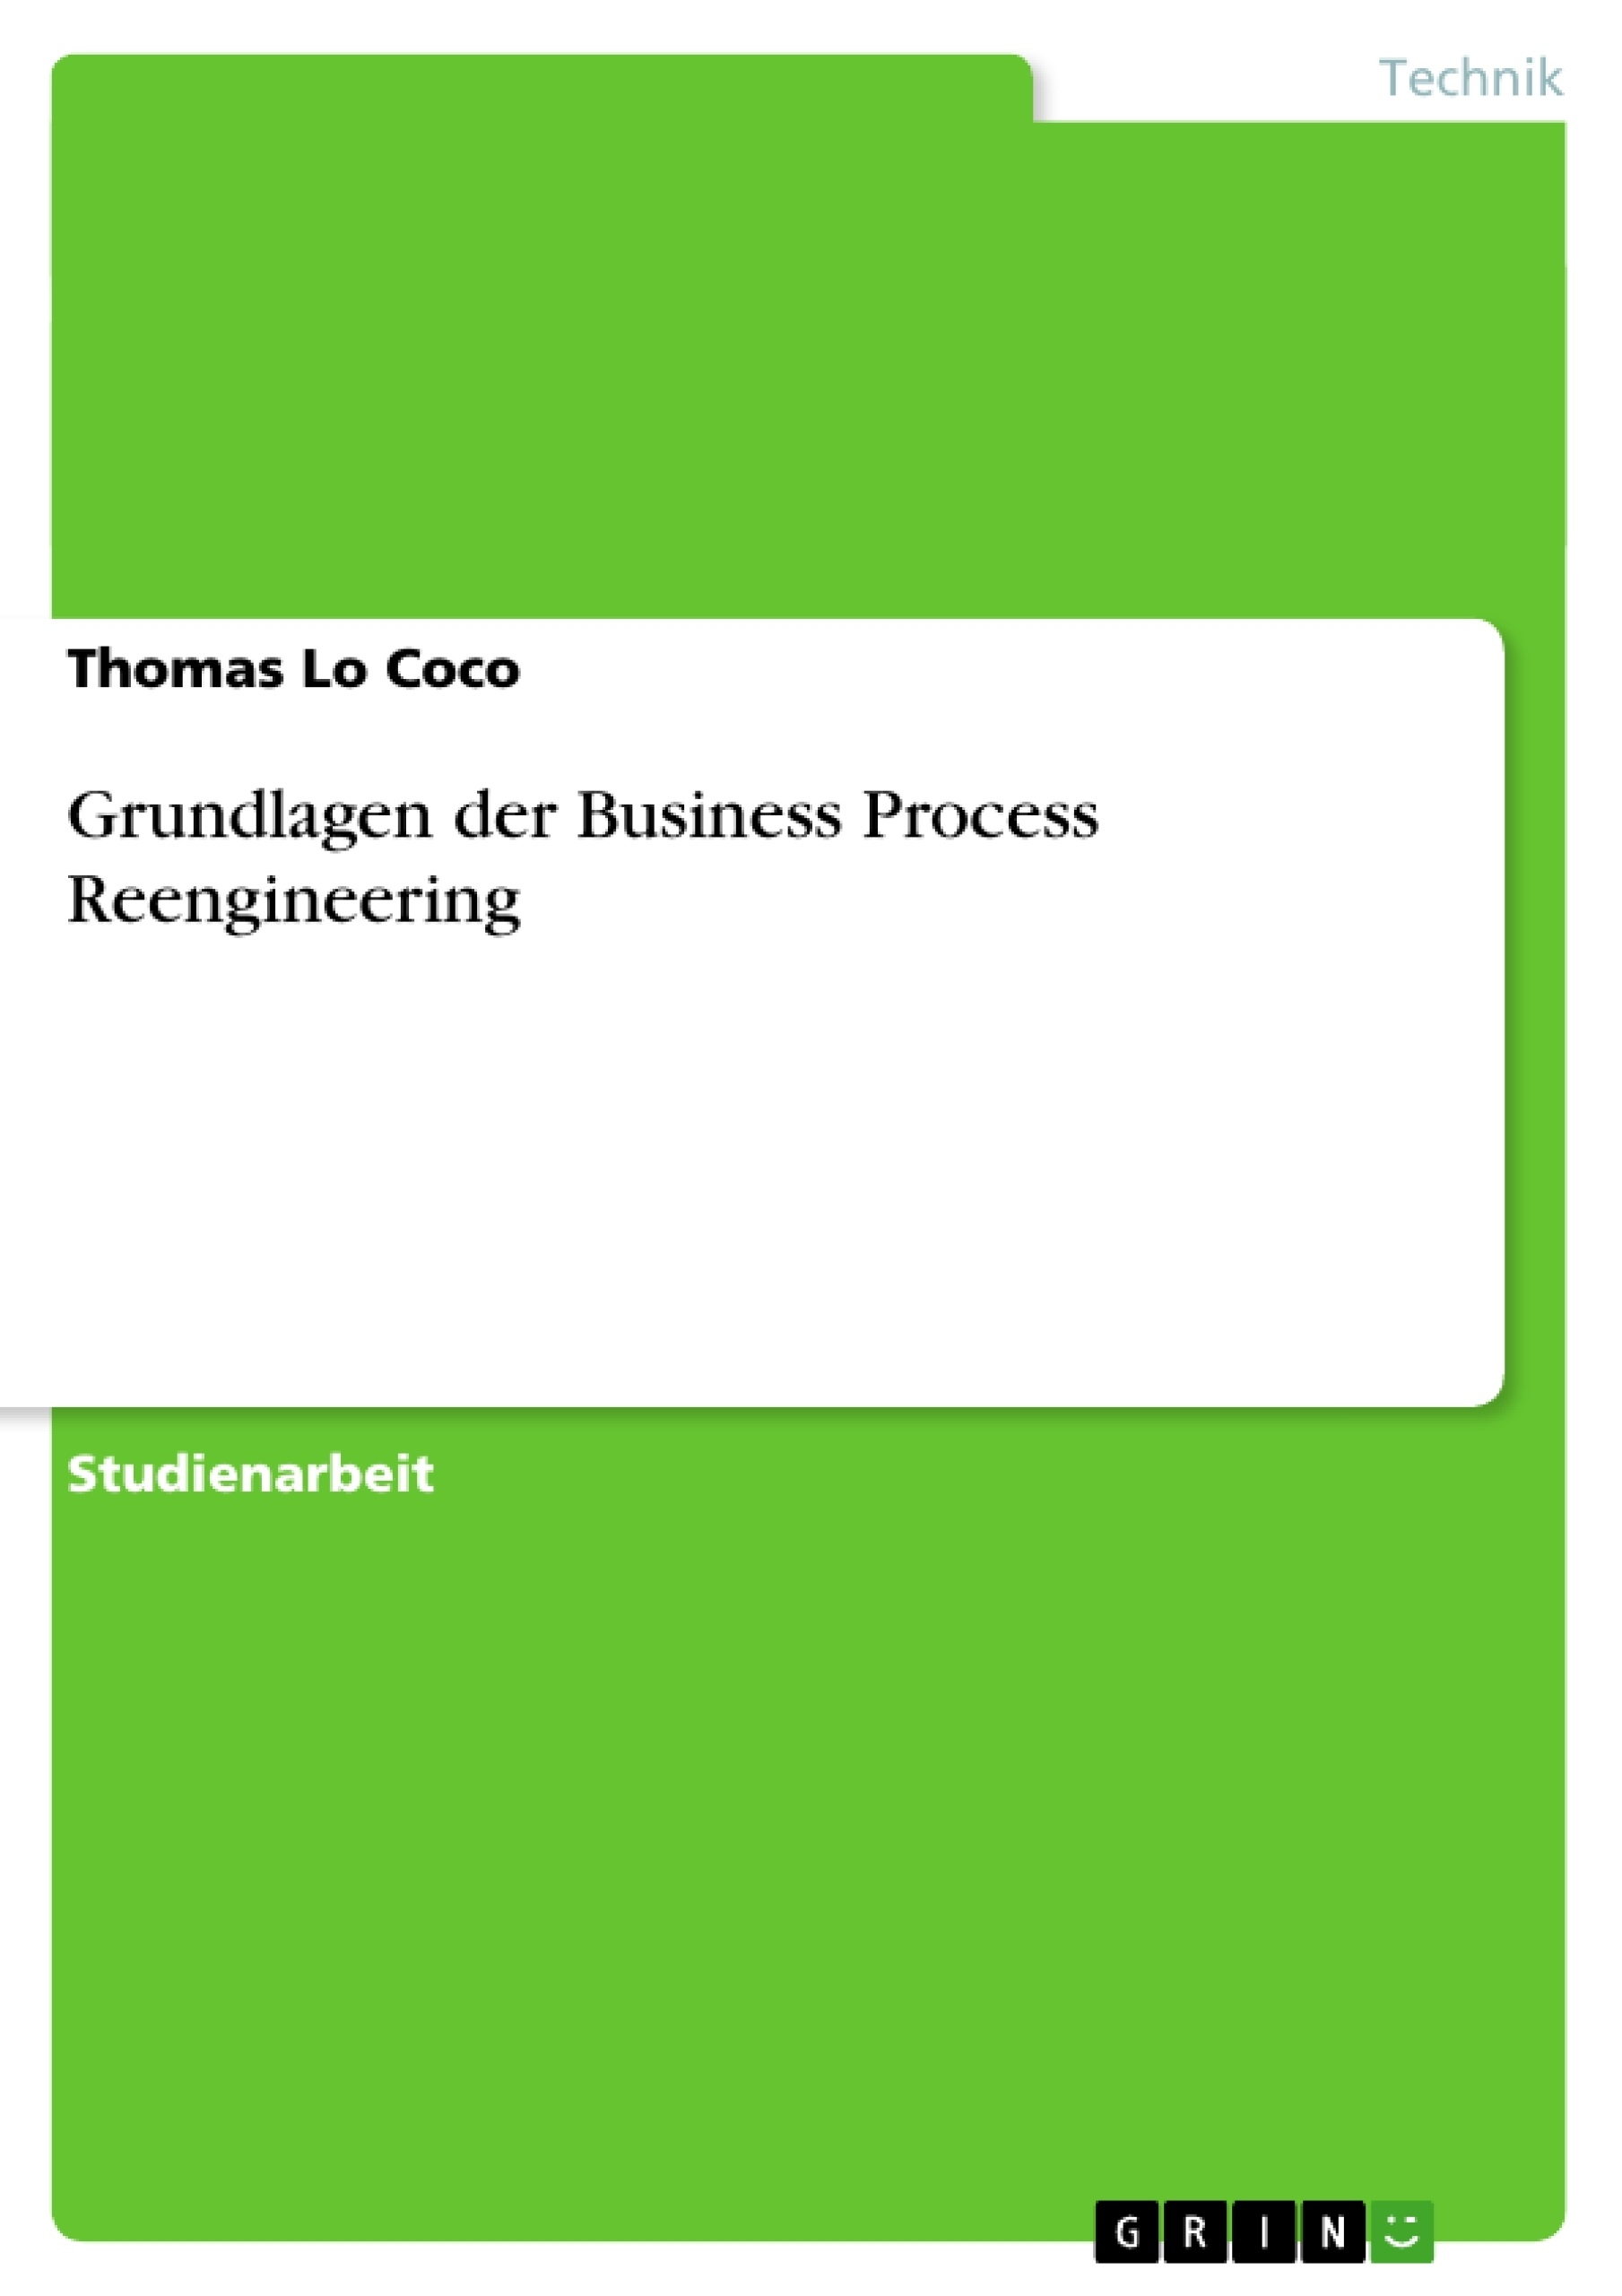 Titel: Grundlagen der Business Process Reengineering